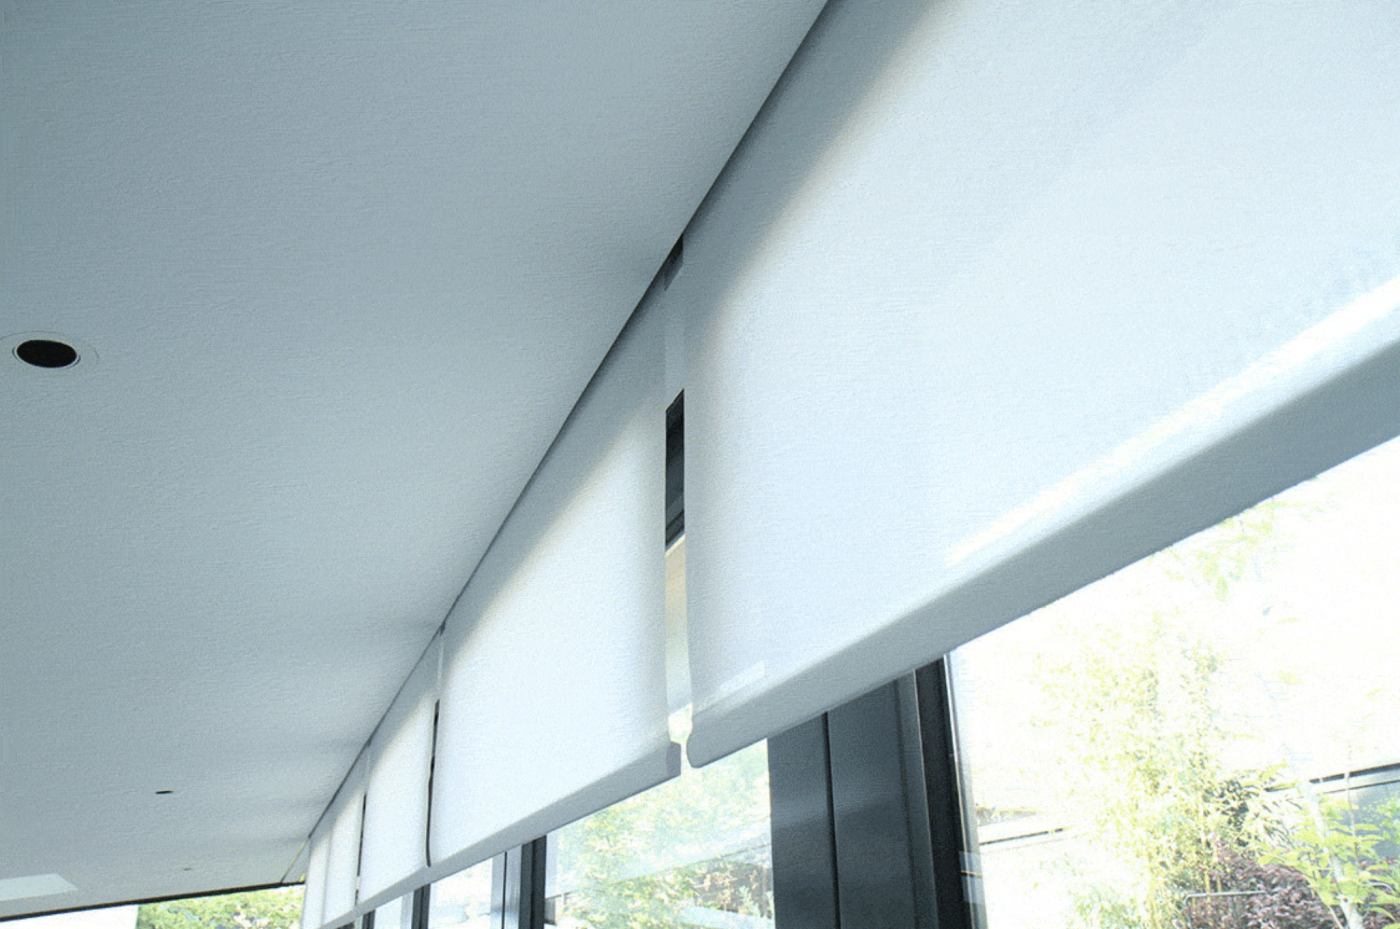 Hardwired vs Battery Powered Blinds - The Electric Blind Company